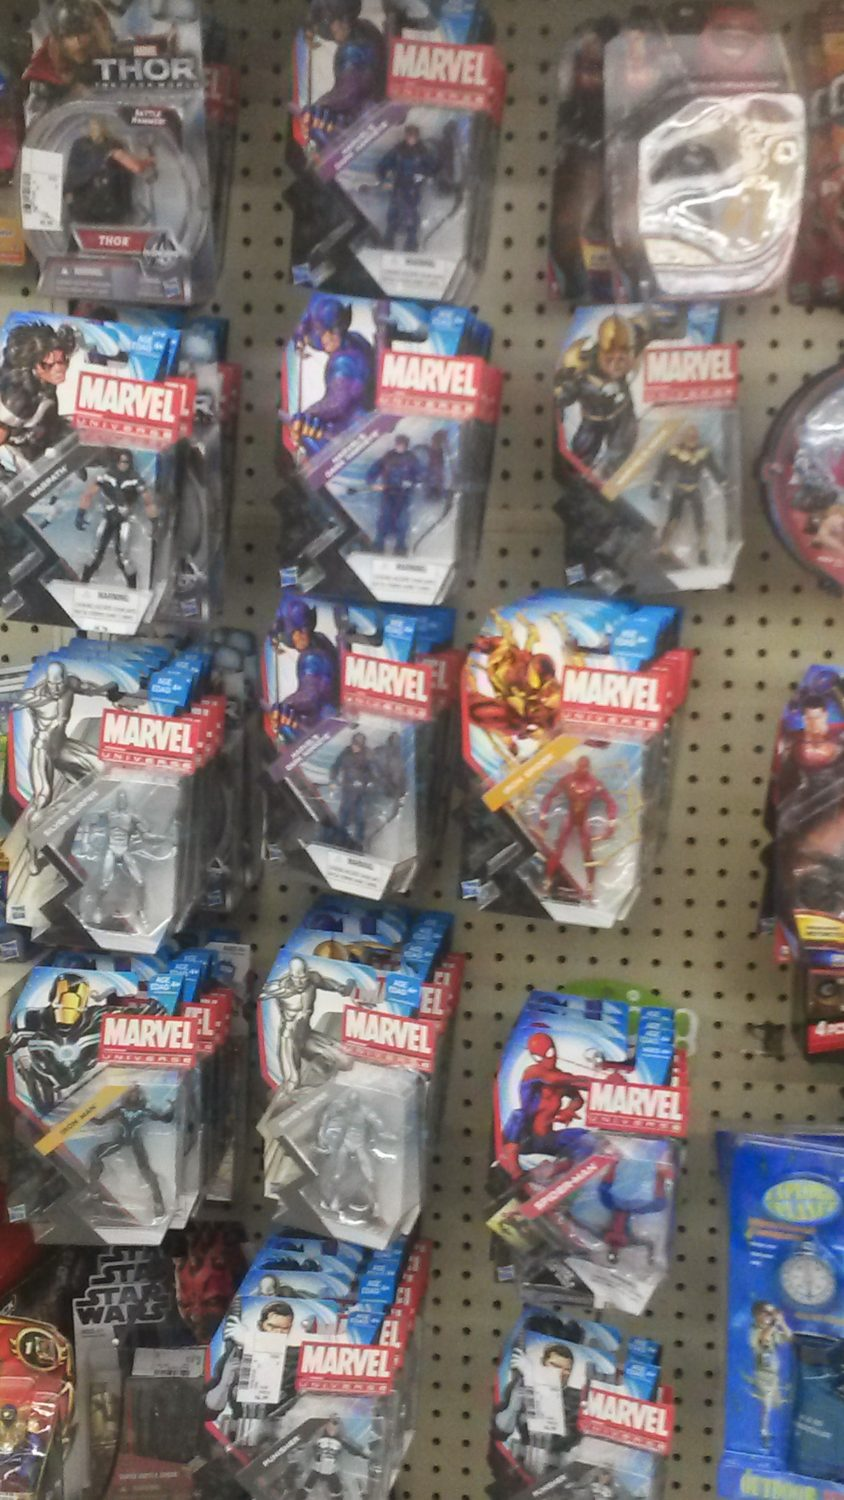 Hasbro Marvel Universe 4″ Action Figures At Gabriel Brothers